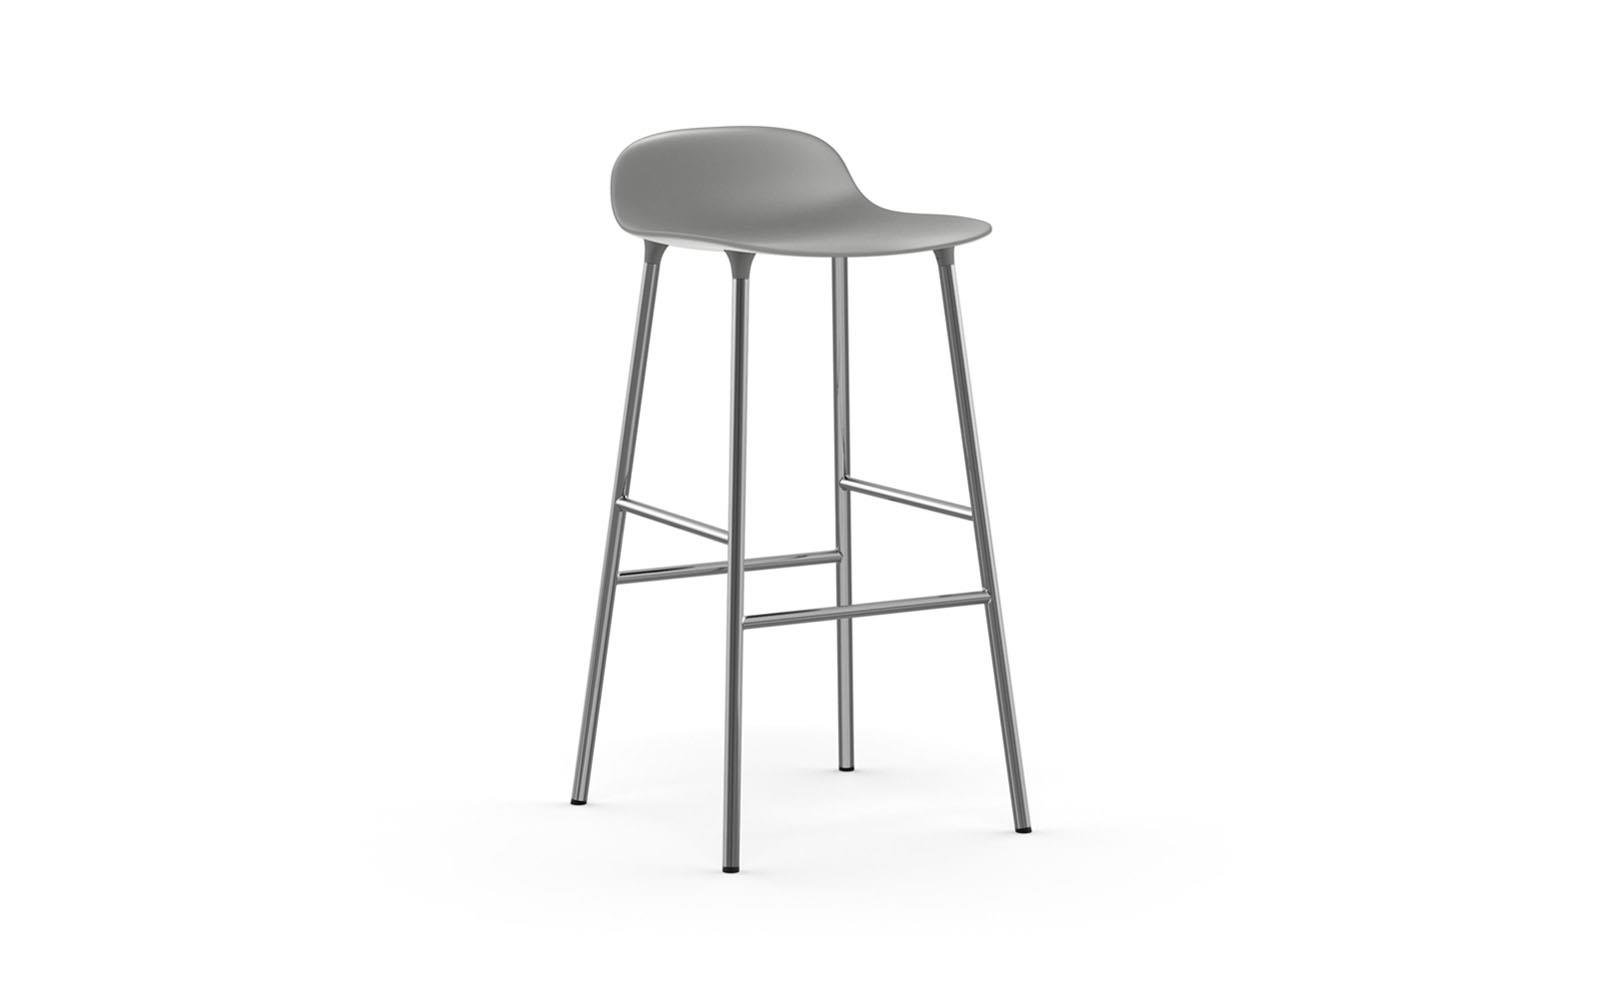 Form Barstool Molded Plastic Shell Chair With Chrome Legs